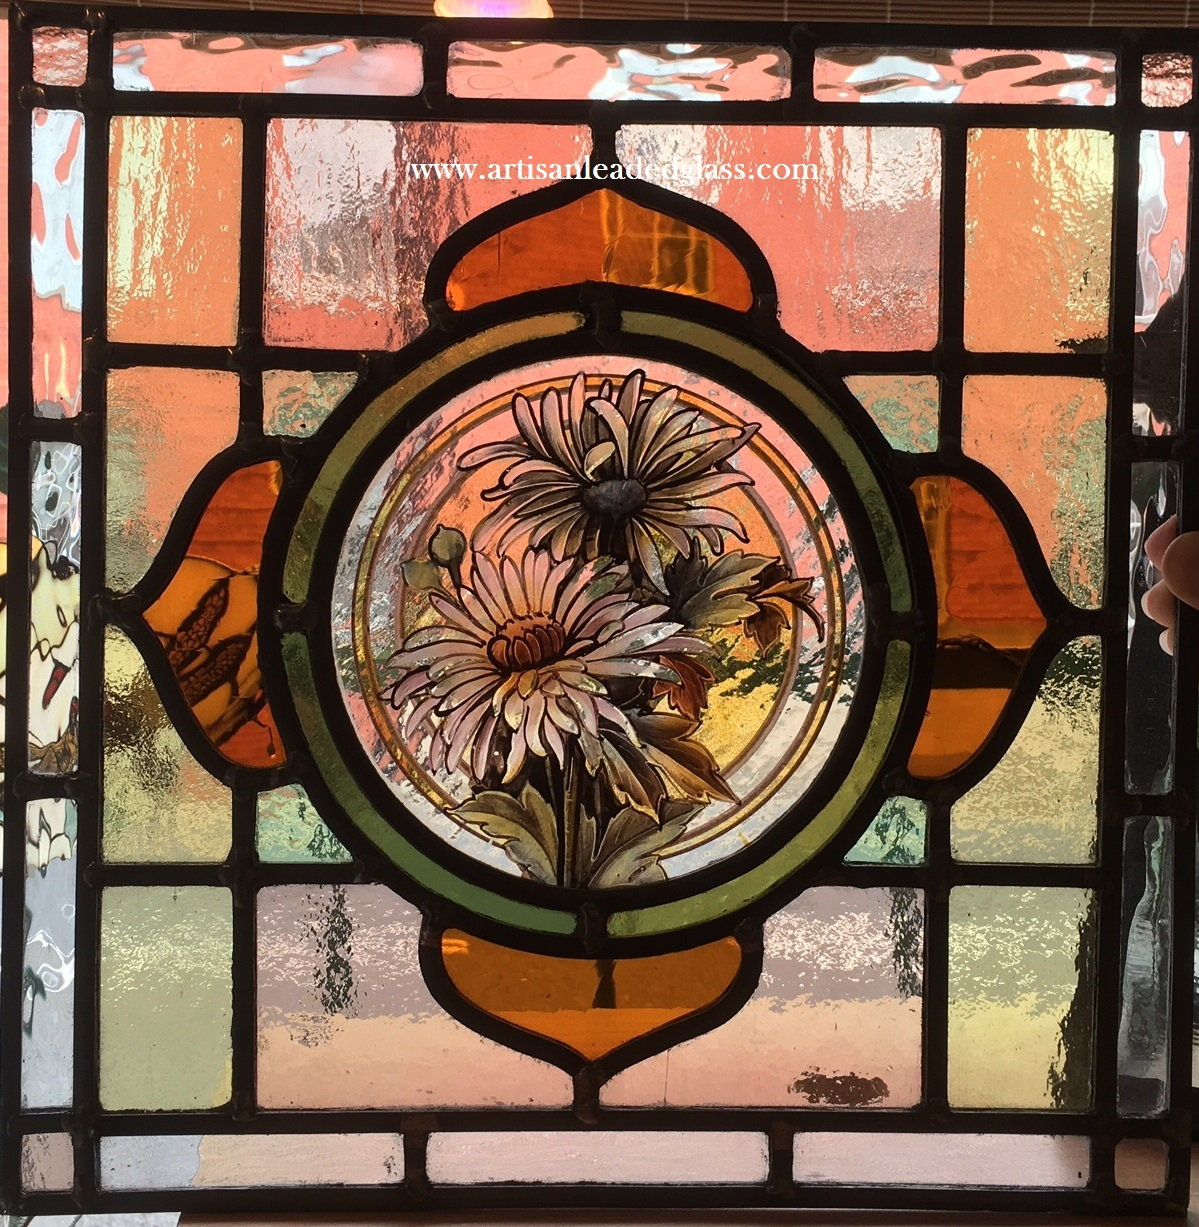 Although Not An Antique This Window Is A Nicely Designed And Made Traditional Stained Glass Featuring Saxophone Keyboard Cymbals With Rich